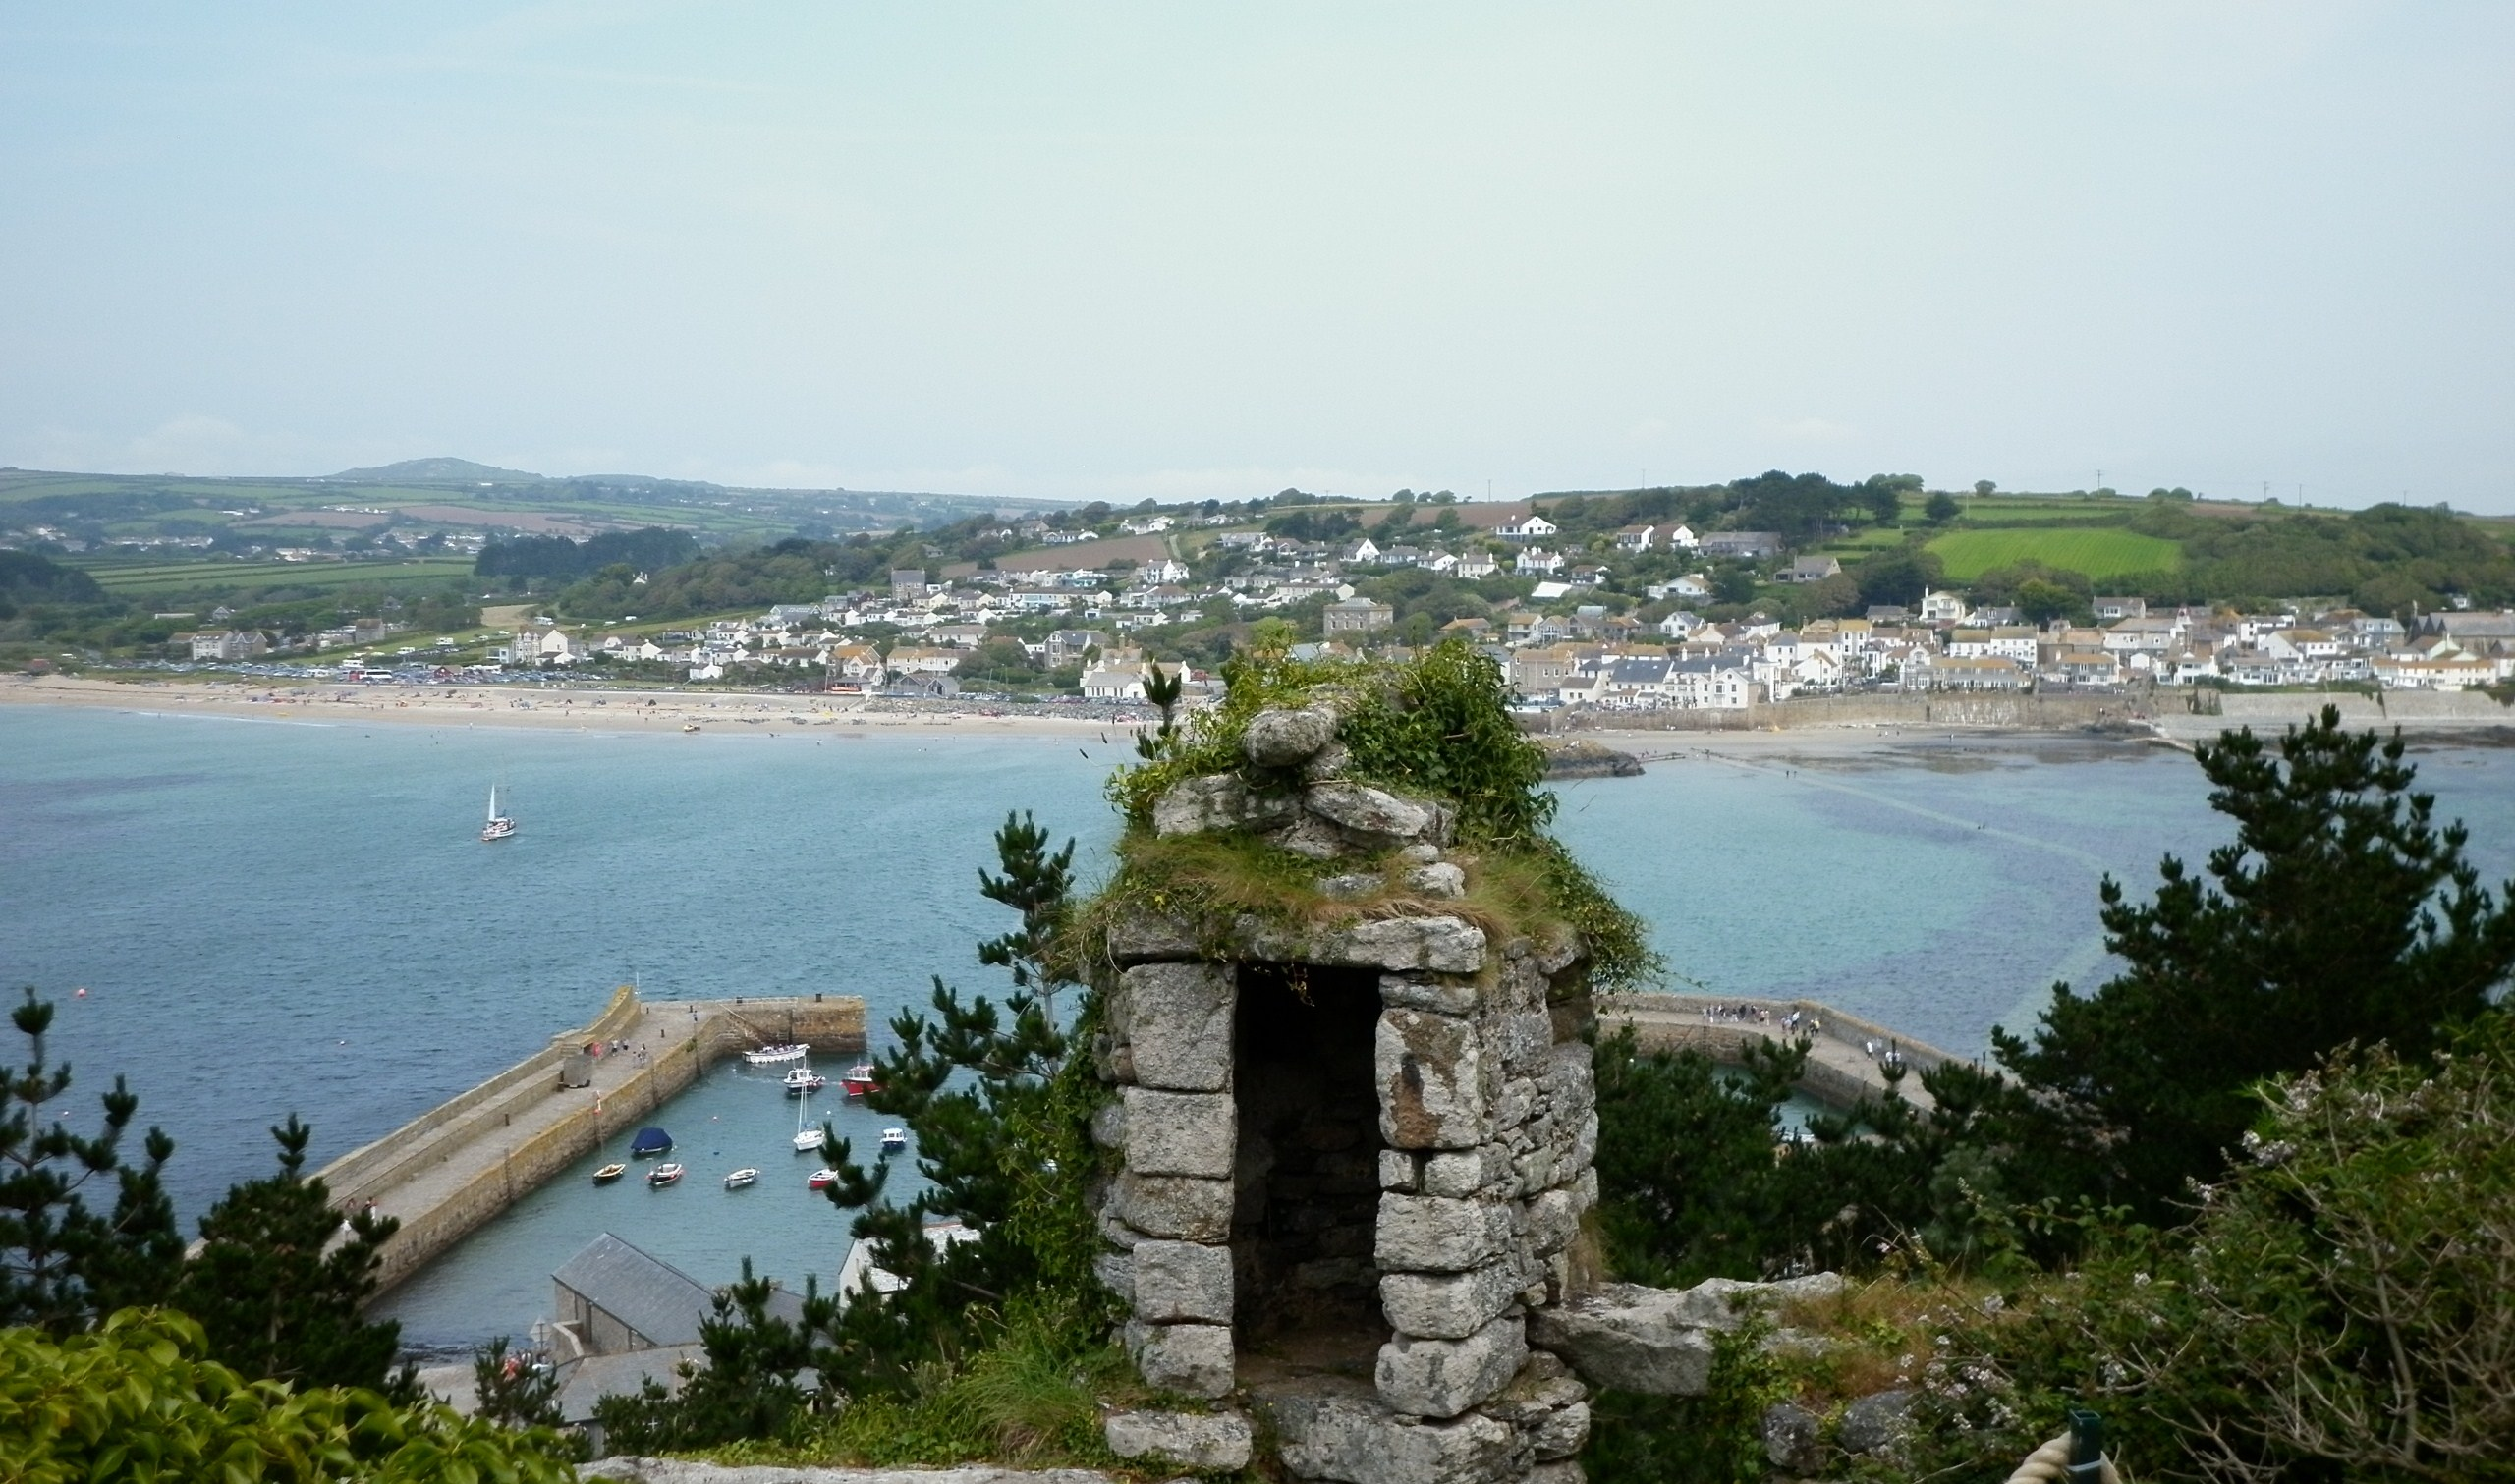 The views from St Michael's Mount are amazing